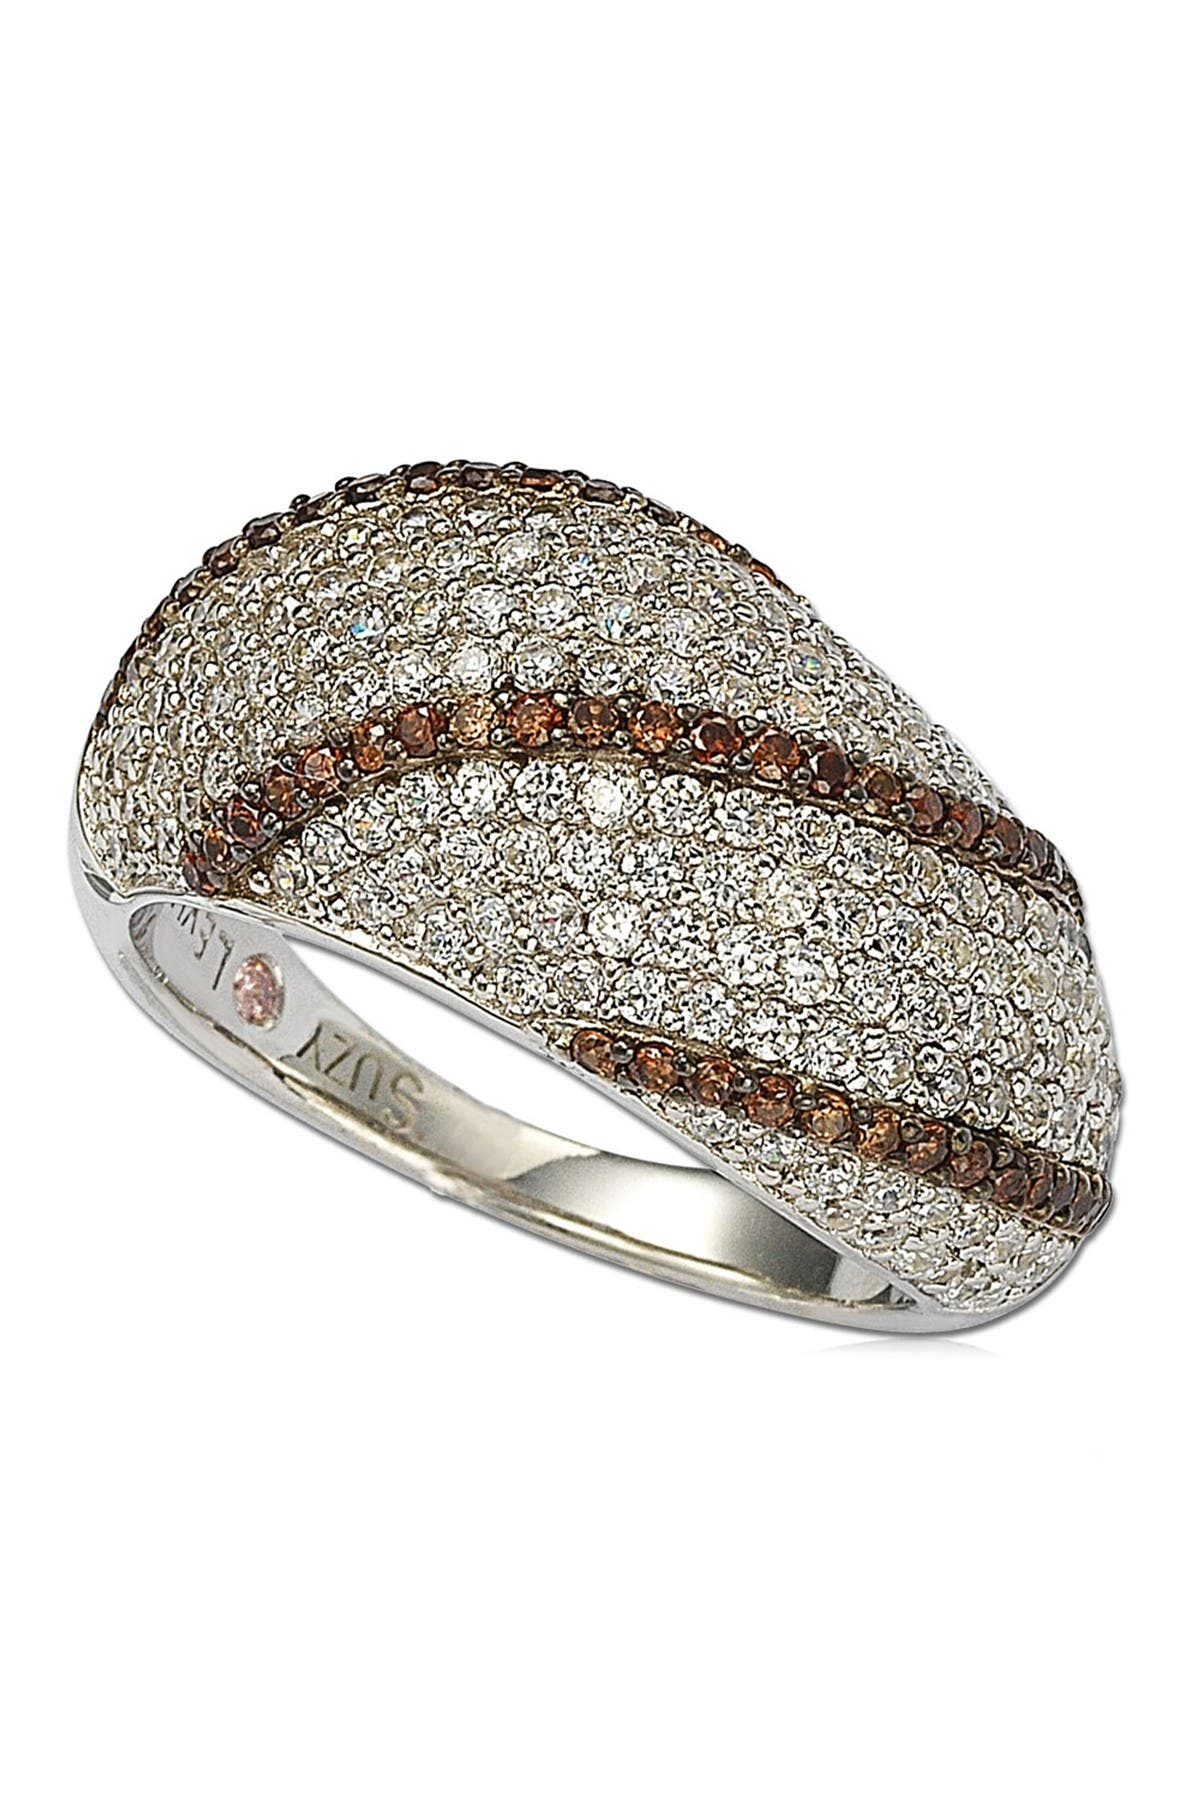 Image of Suzy Levian Sterling Silver Pave White & Chocolate CZ Ring